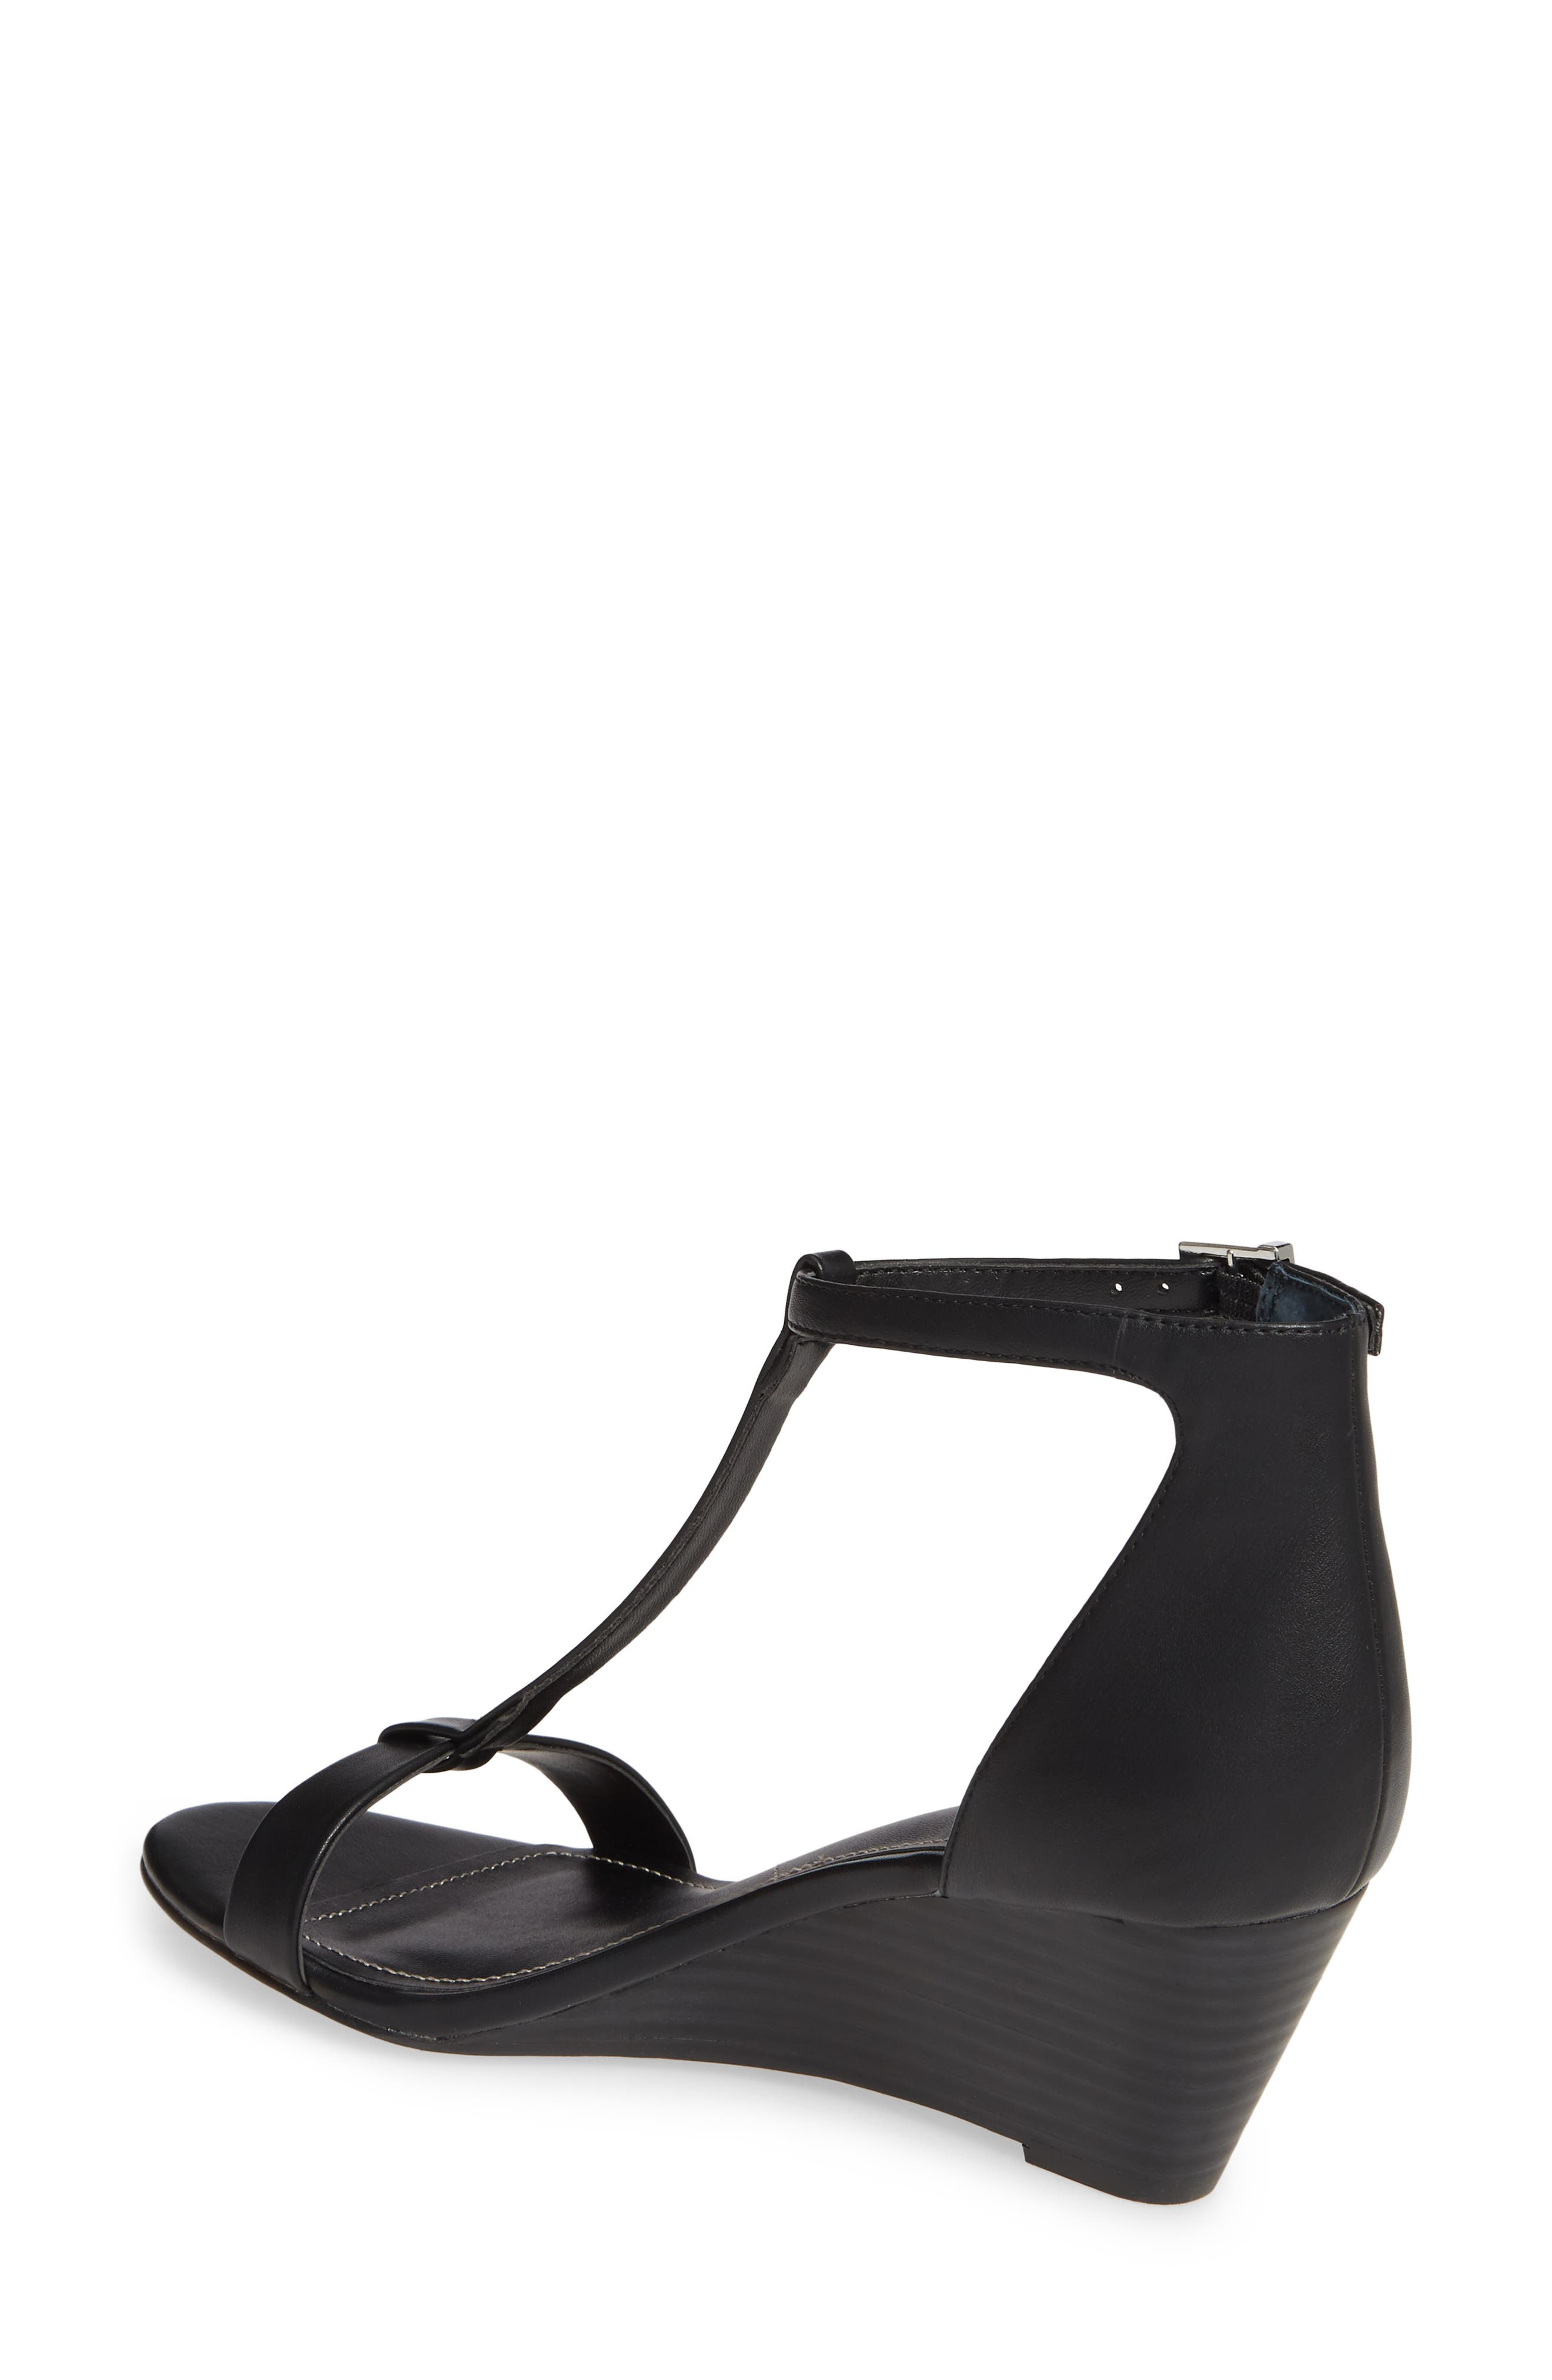 CHARLES BY CHARLES DAVID, Georgette Wedge Sandal, Alternate thumbnail 2, color, BLACK FAUX LEATHER